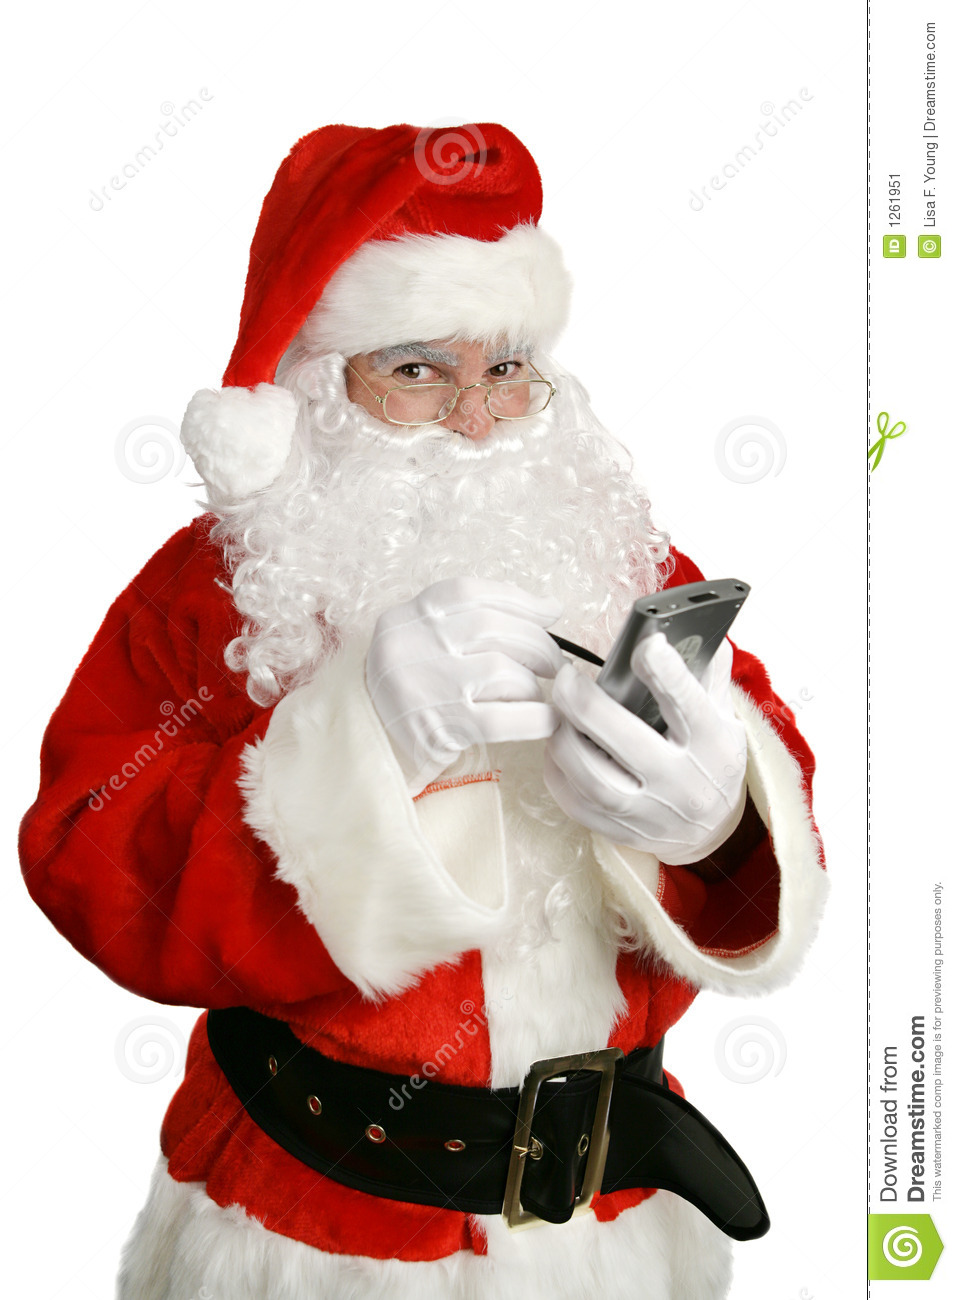 santa claus cougars personals Dating santa claus girls,  we have thousands of santa claus babes to female models to classy mature ladies also know as sexy santa claus cougars looking for toy boys.